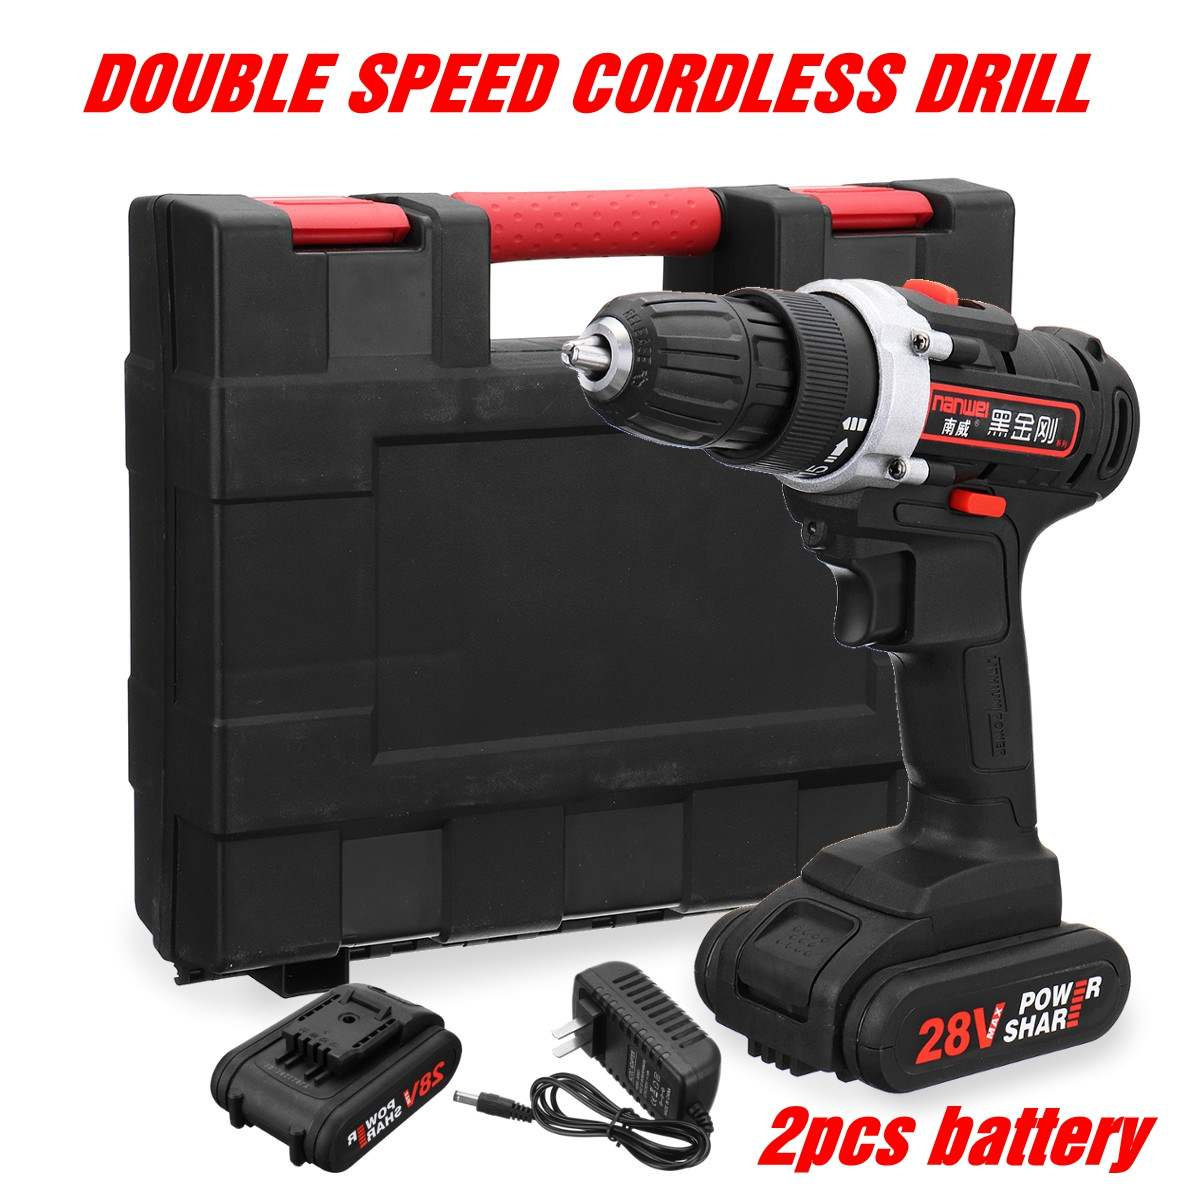 1/2 Battery Charger Free Cordless Drill Double Speed 28V 1500RMP 35N.M Torque Electric Screwdriver